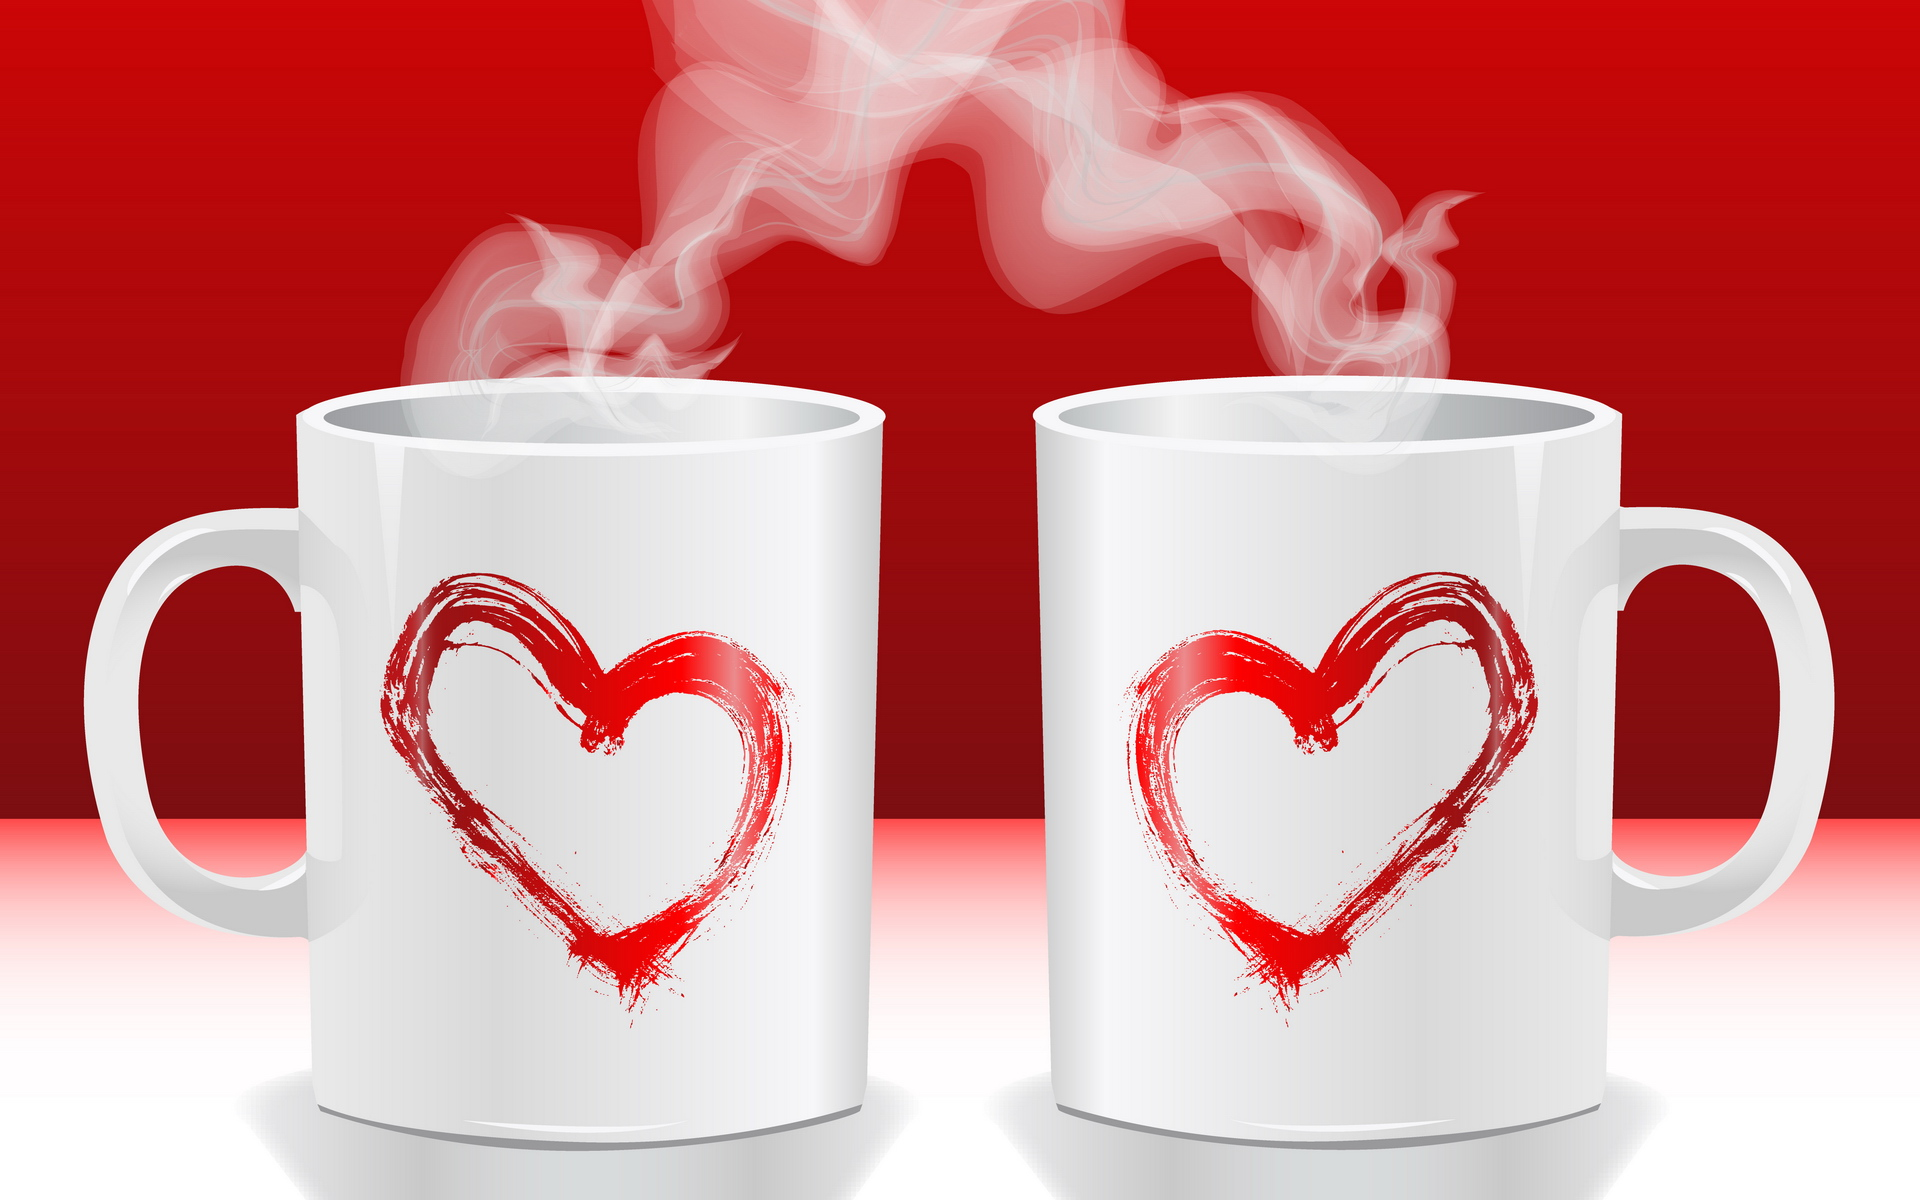 Love Romantic Good Morning Hd Wallpaper : ???? ??????? ?????? ??? ???????? ?????. ??????? ????????? ???????? ??? ????? ? ???????? ?????????.